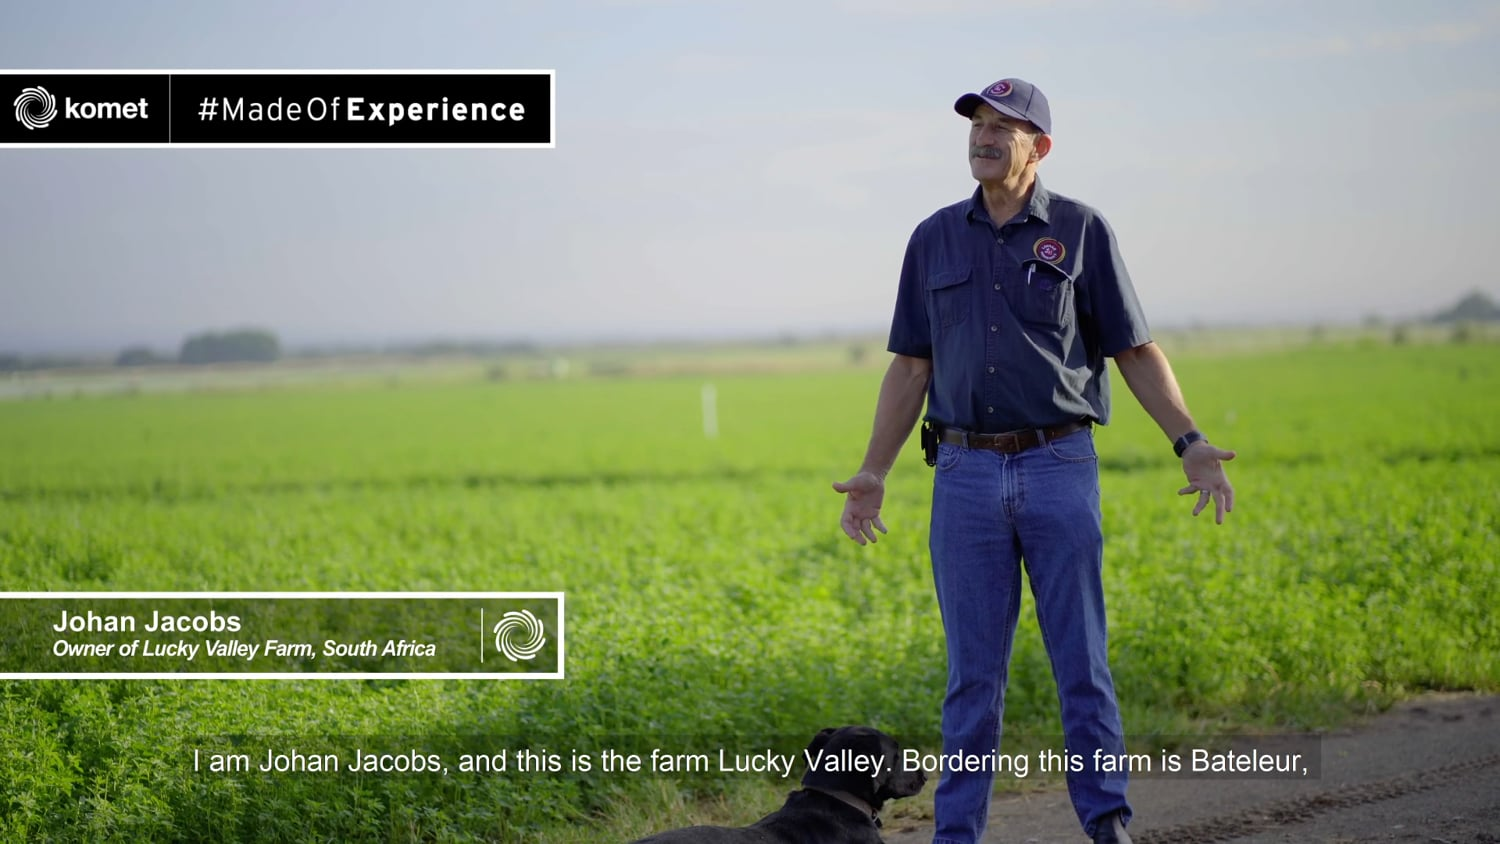 MadeOfExperience - Johan Jacobs South Africa